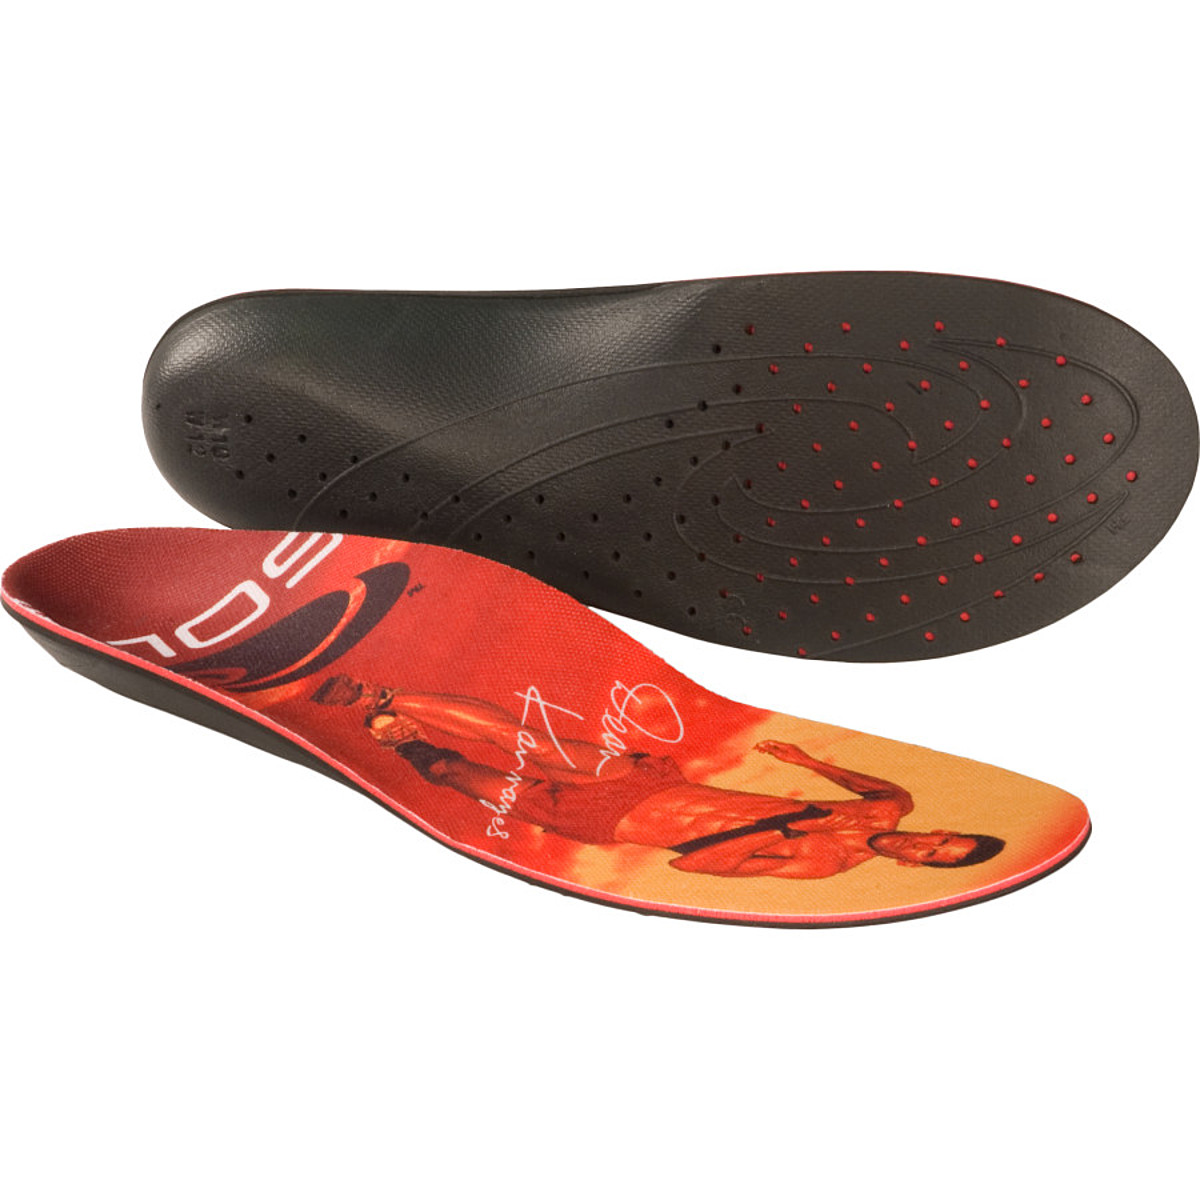 Sole Performance Medium (Dean Karnazes) Footbed